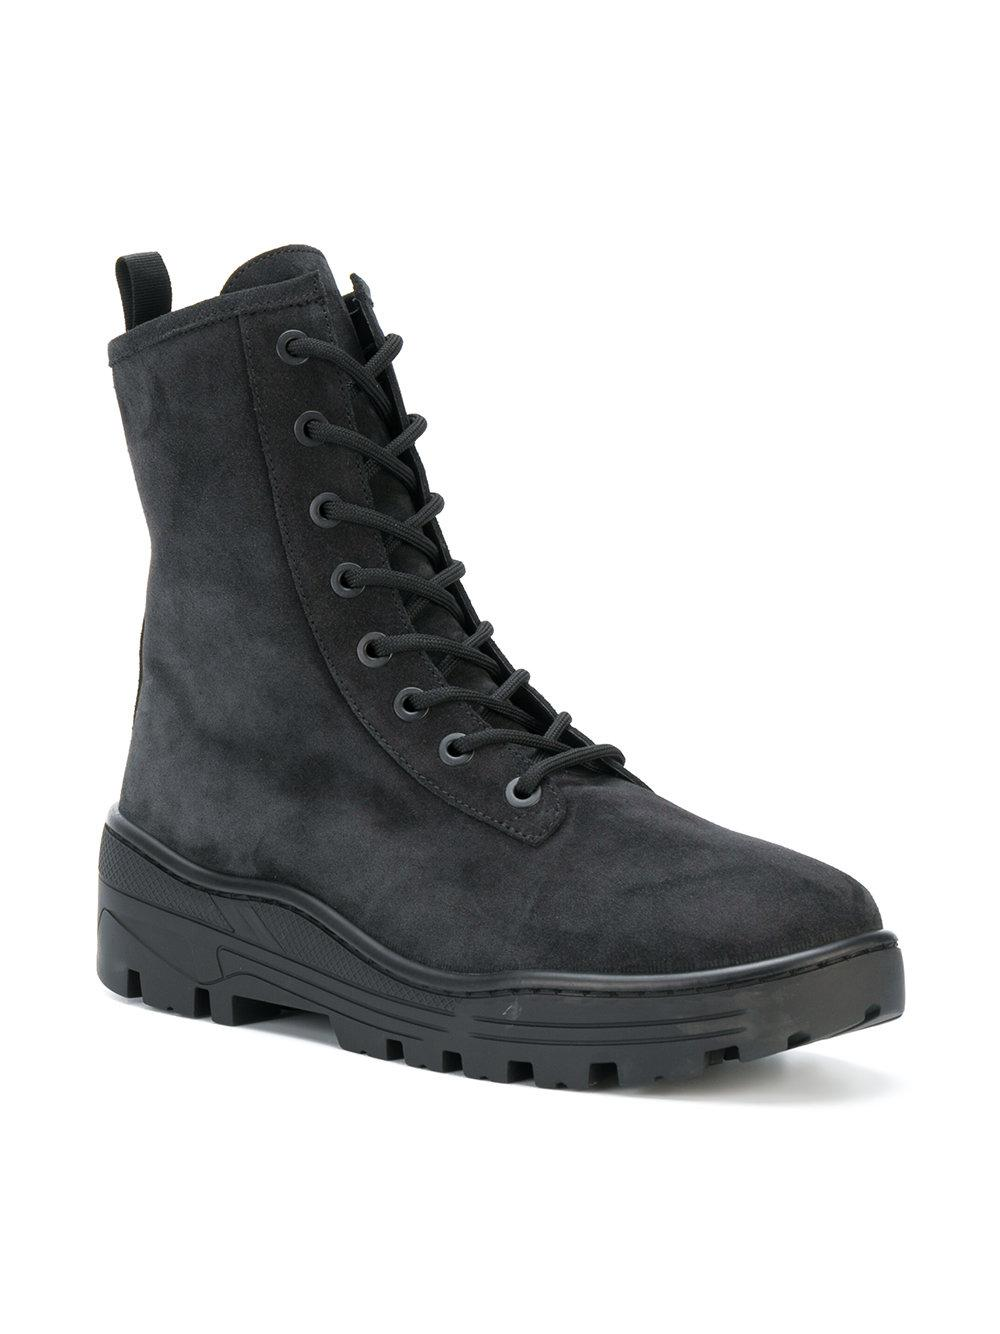 14723938396c4 Lyst - Yeezy Combat Boots in Black for Men - Save 74%